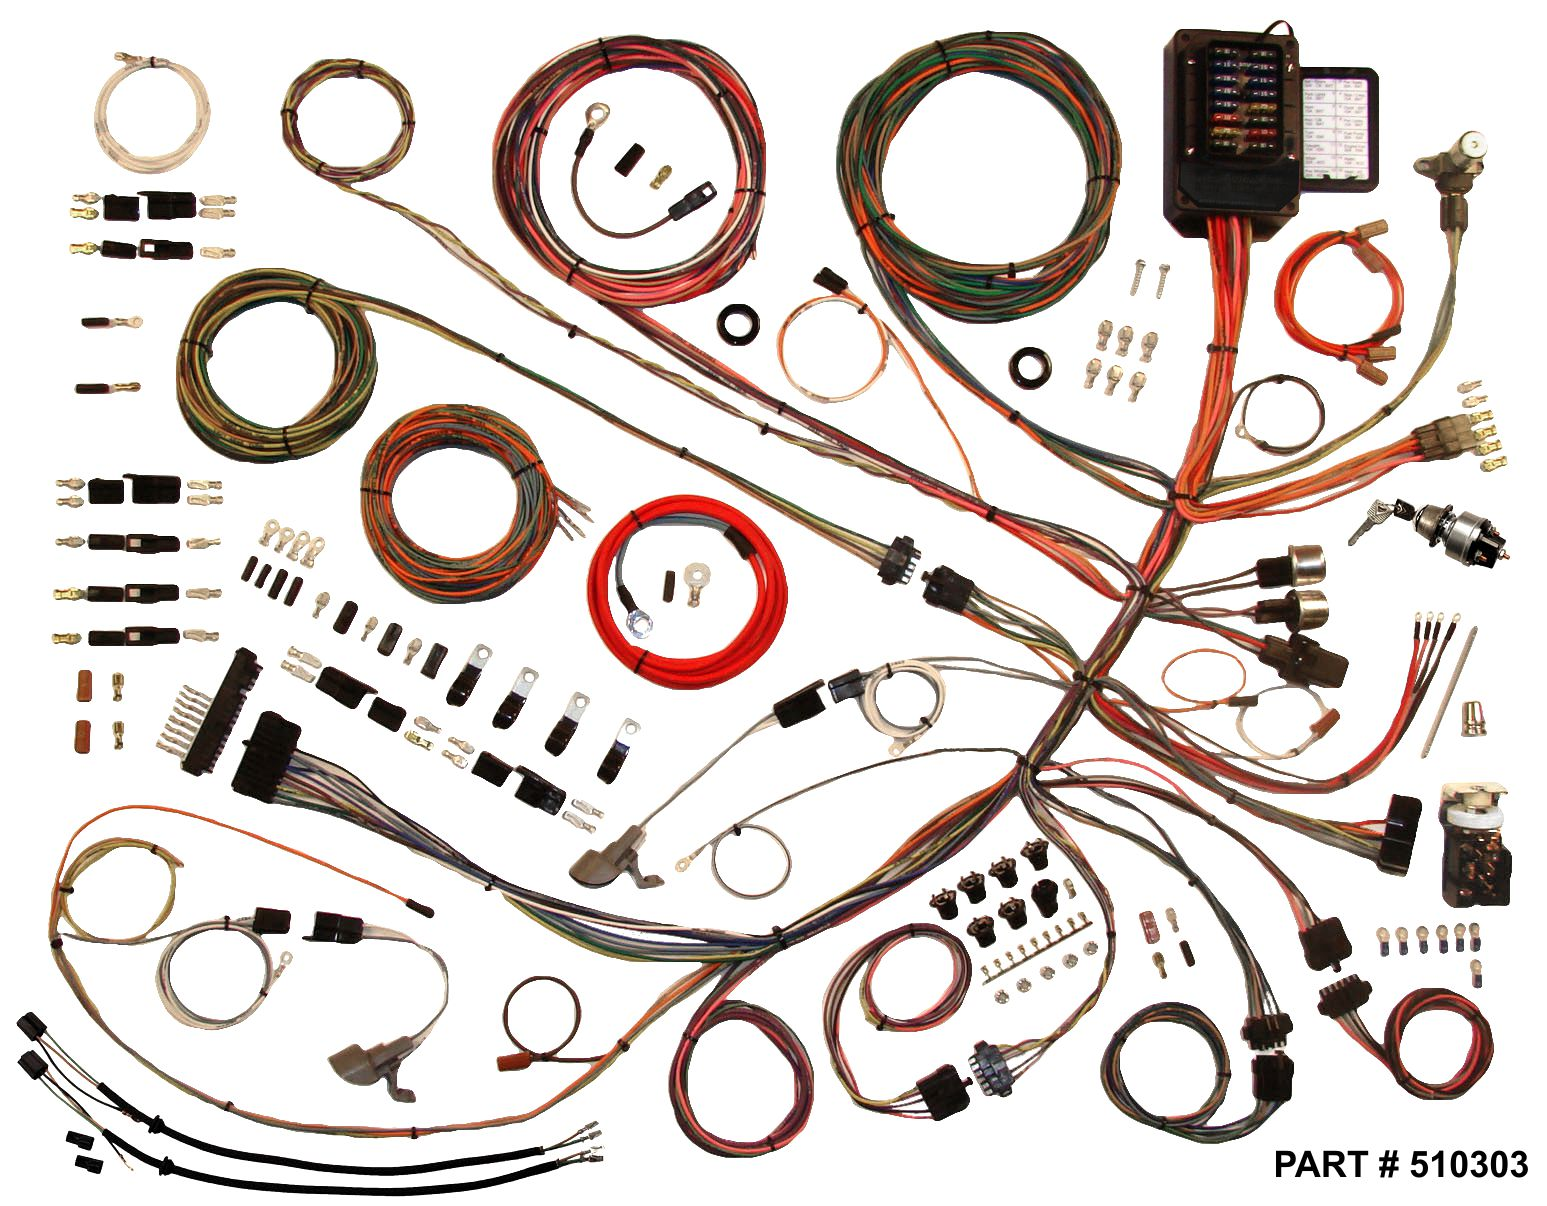 hight resolution of 1953 1956 ford f100 trucks restomod wiring system 56 ford f100 wiring diagram 1953 56 ford